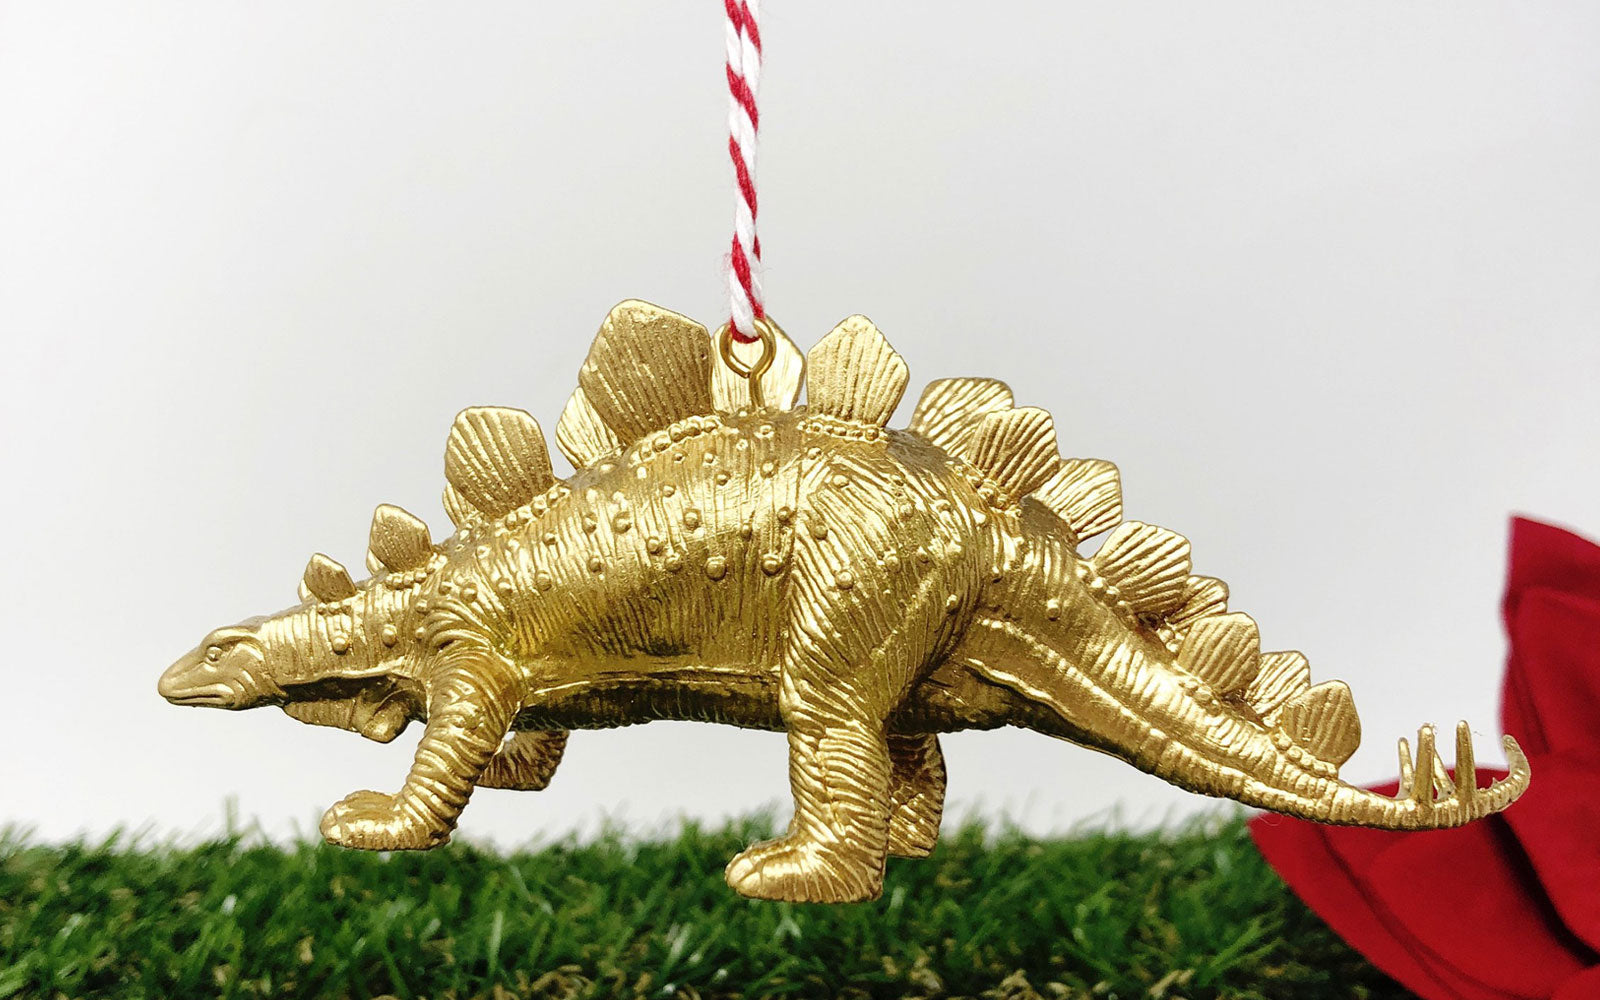 Muri Home Stegosaurus Dinosaur Gold Christmas Tree Ornament